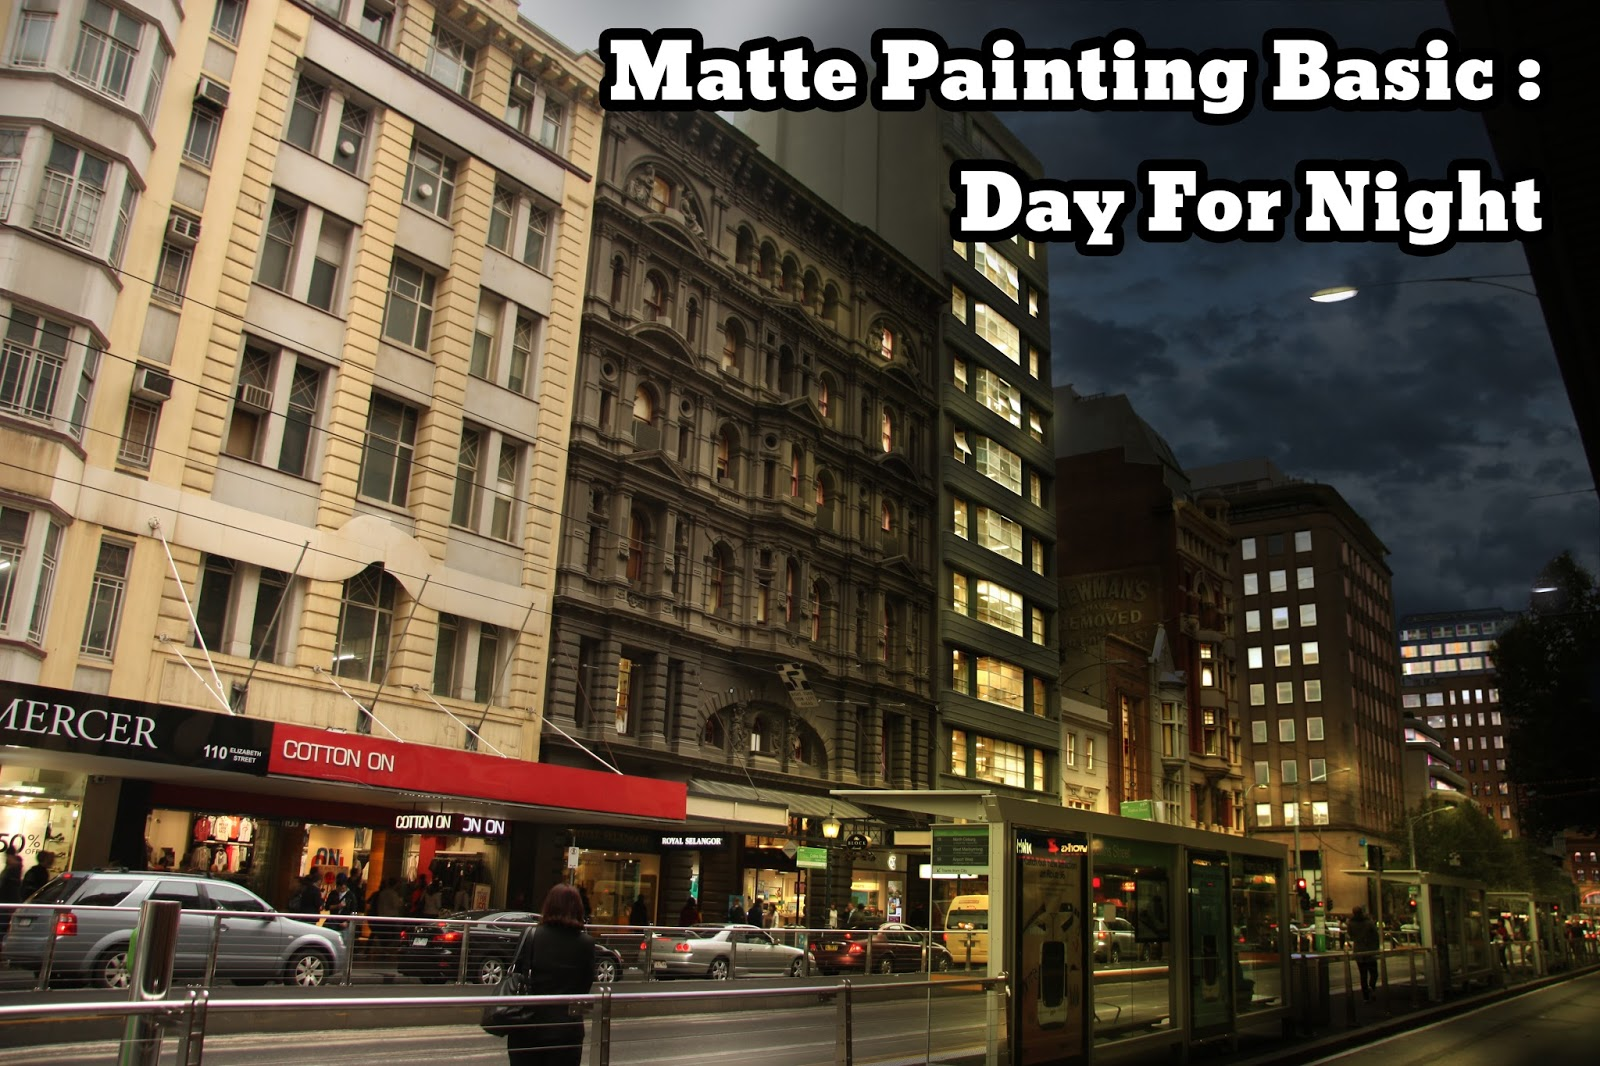 Matte painting basic day for night andrew suryadi 3d academy in this tutorial im going to share about a basic matte painting technique on how to change a photo image from day time to night time baditri Gallery